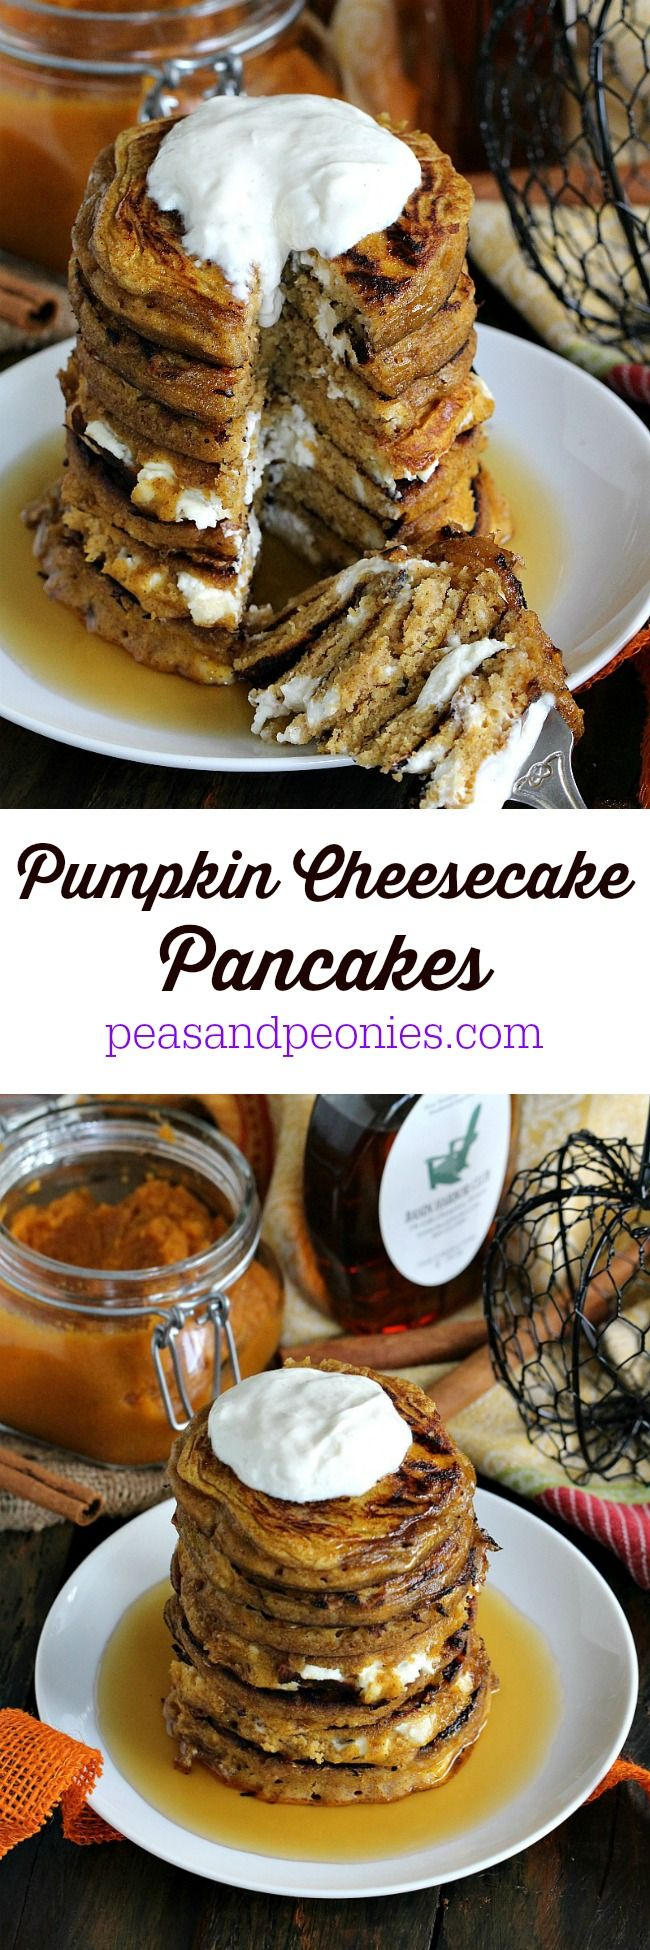 Pumpkin Cheesecake Pancakes PIN17